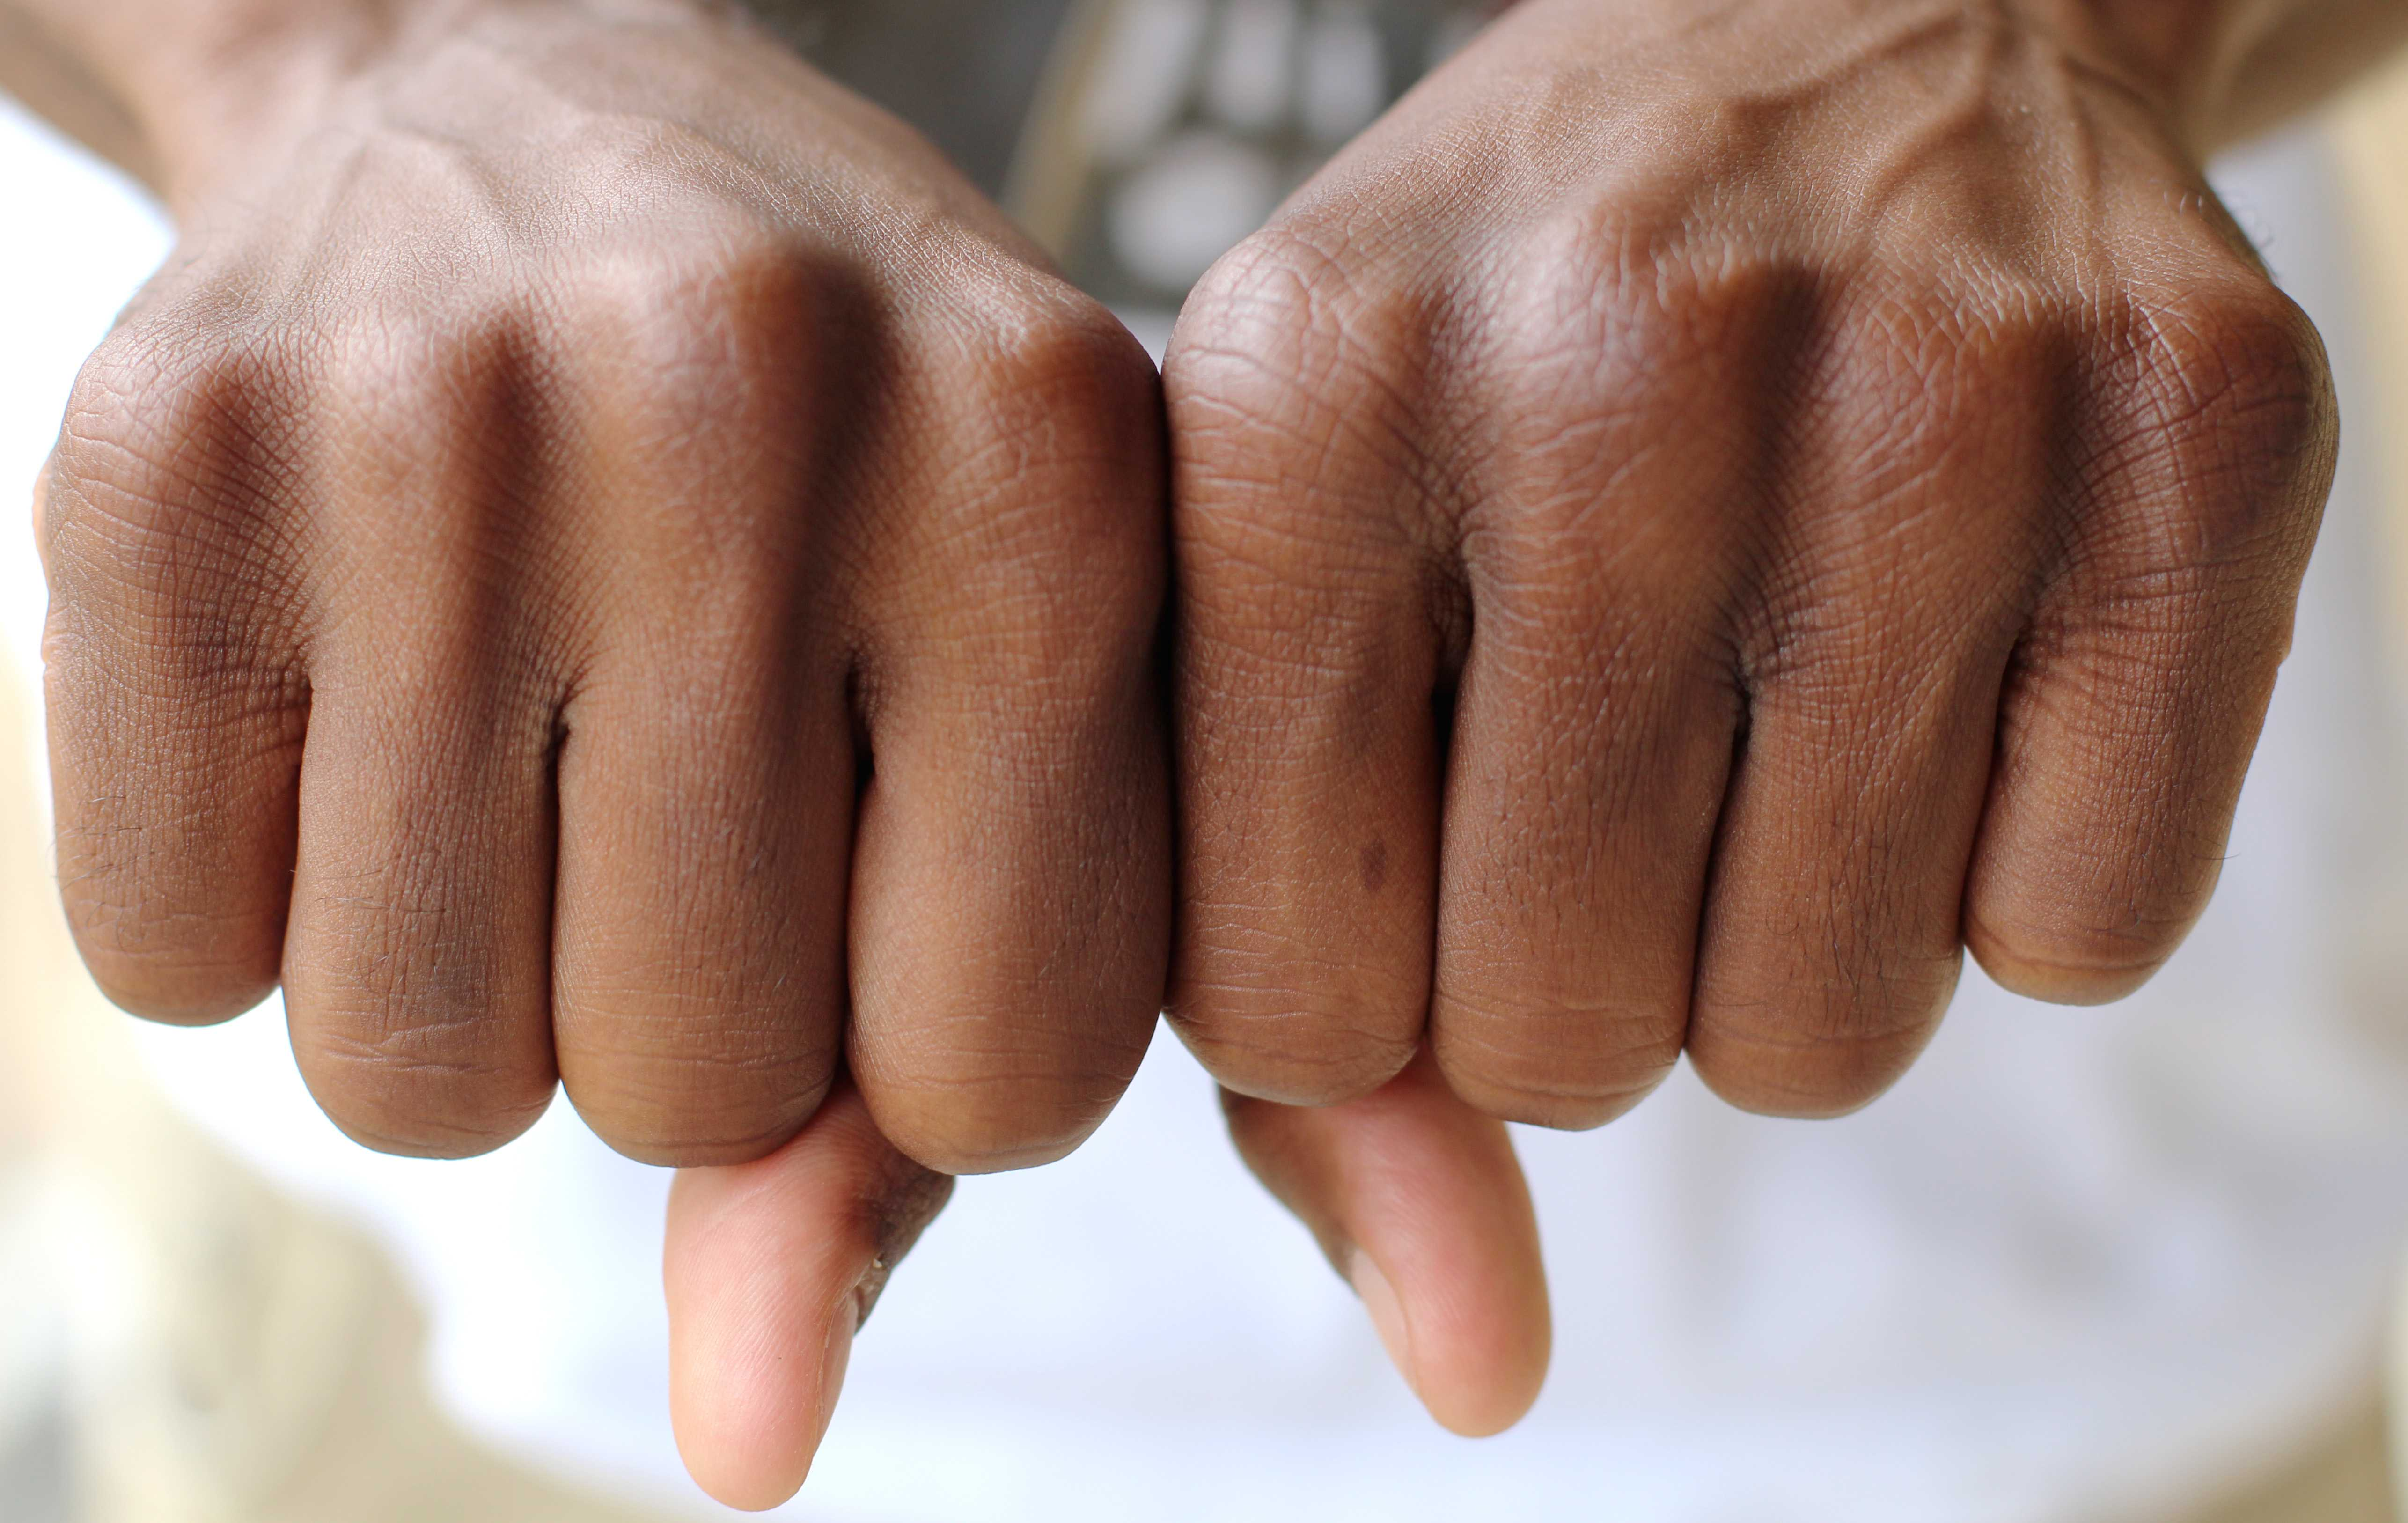 Photo illustration by Sam Mott | Bare-knuckled combat may be safer than boxing with gloves.